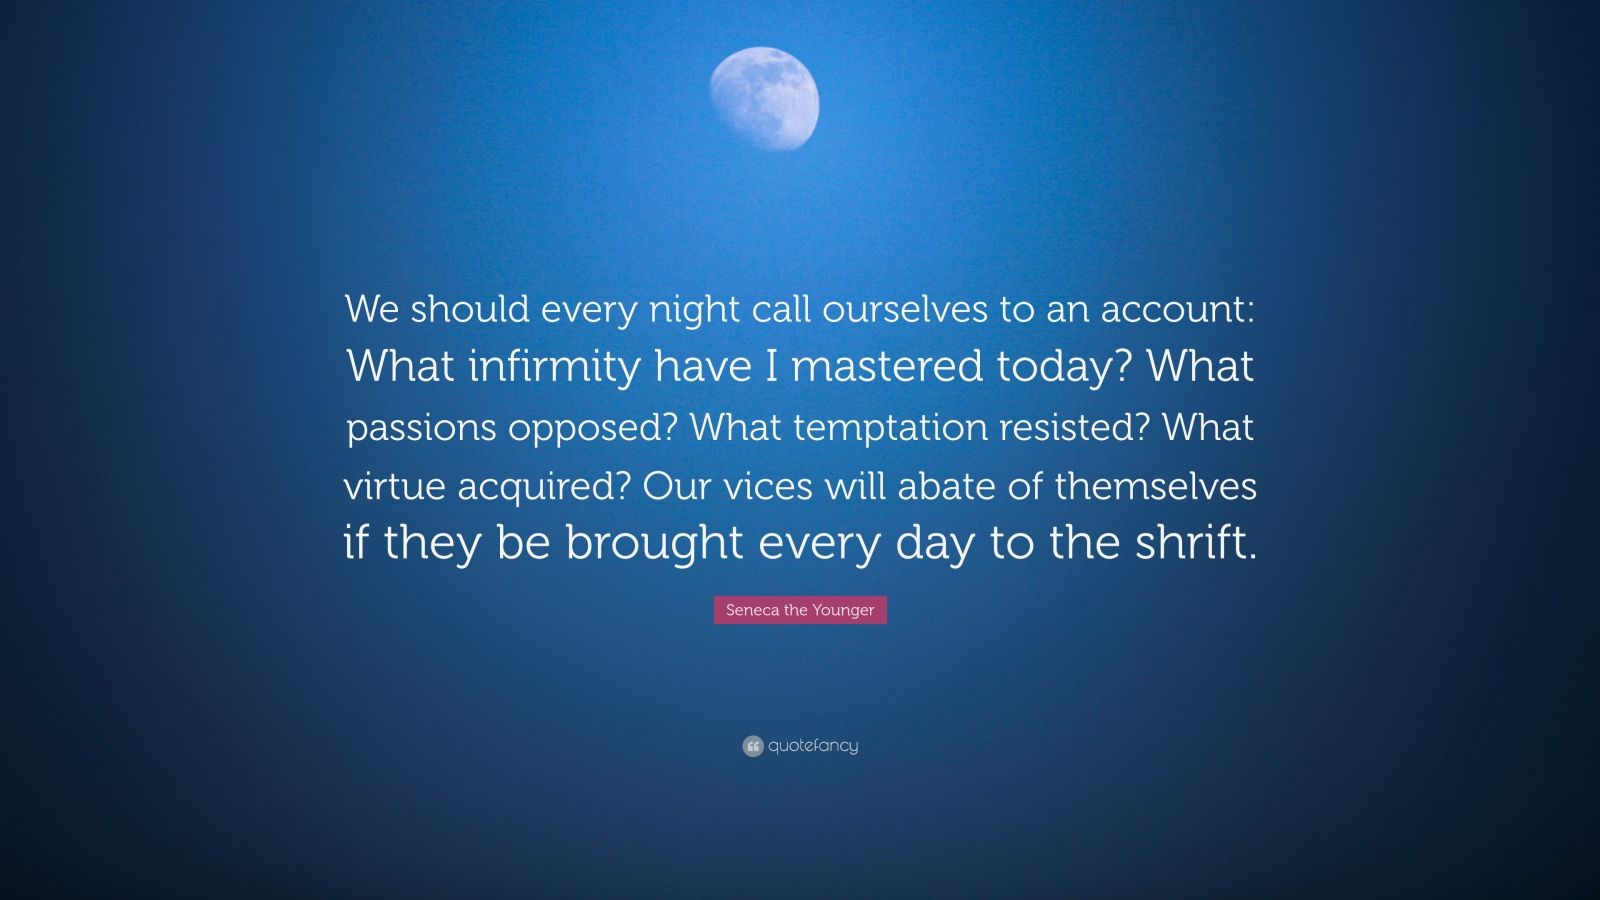 """Seneca the Younger Quote: """"We should every night call ourselves to an account: What infirmity have I mastered today? What passions opposed? What temptation resisted? What virtue acquired? Our vices will abate of themselves if they be brought every day to the shrift."""""""